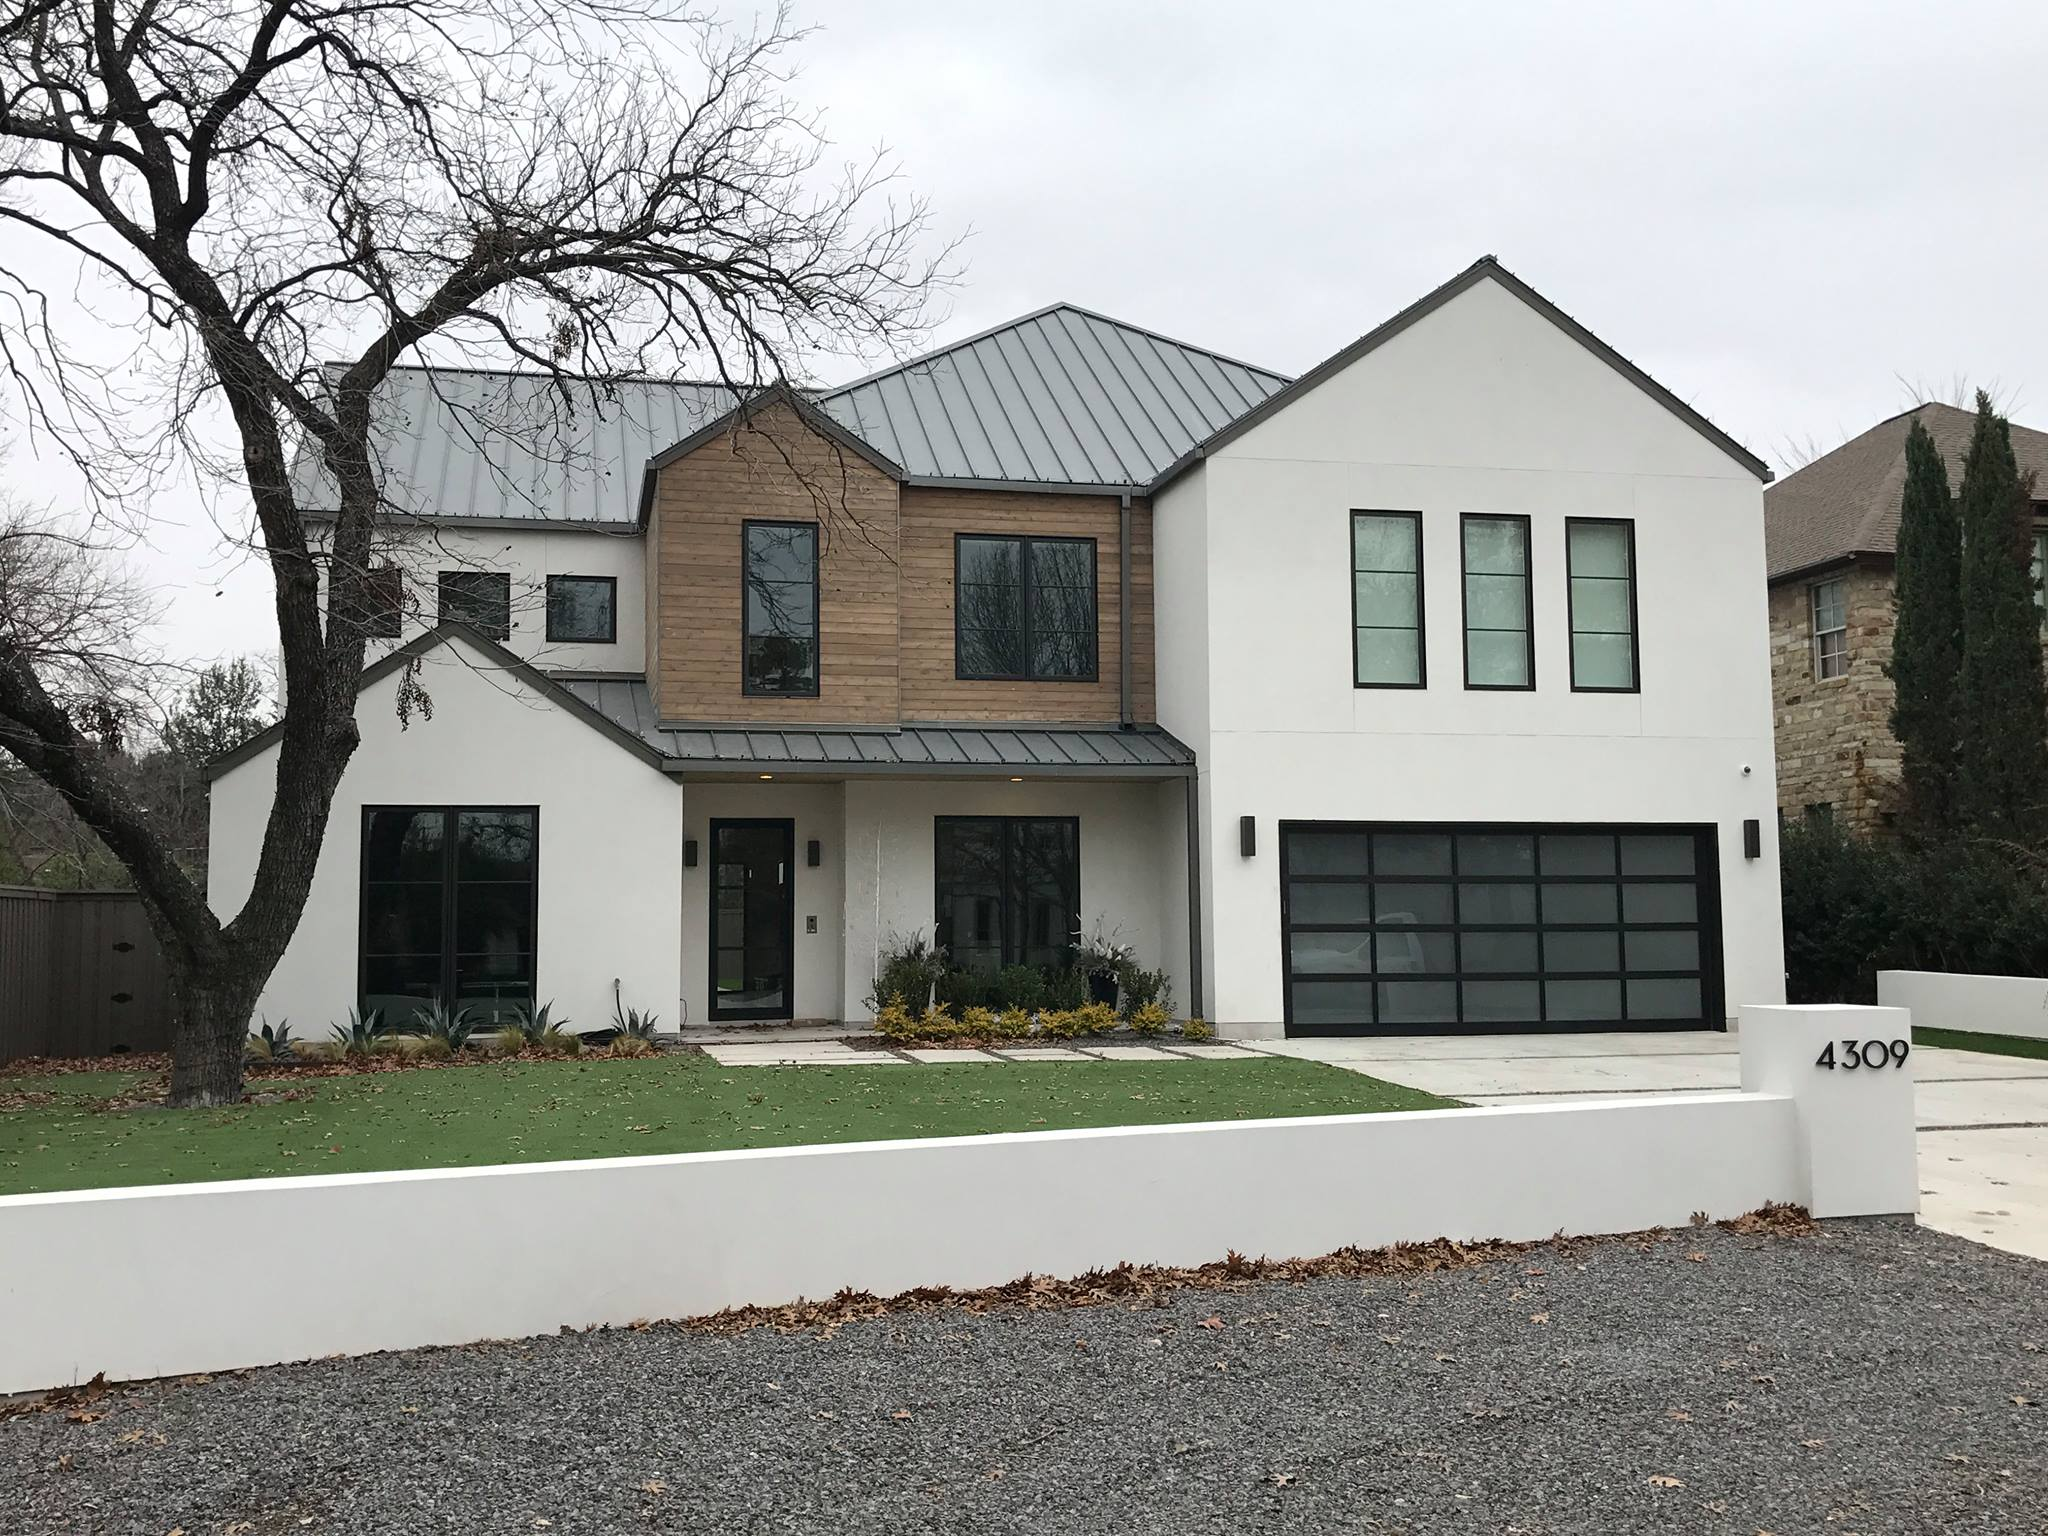 Residential Rockwall Texas Roofing Irongate Roofing